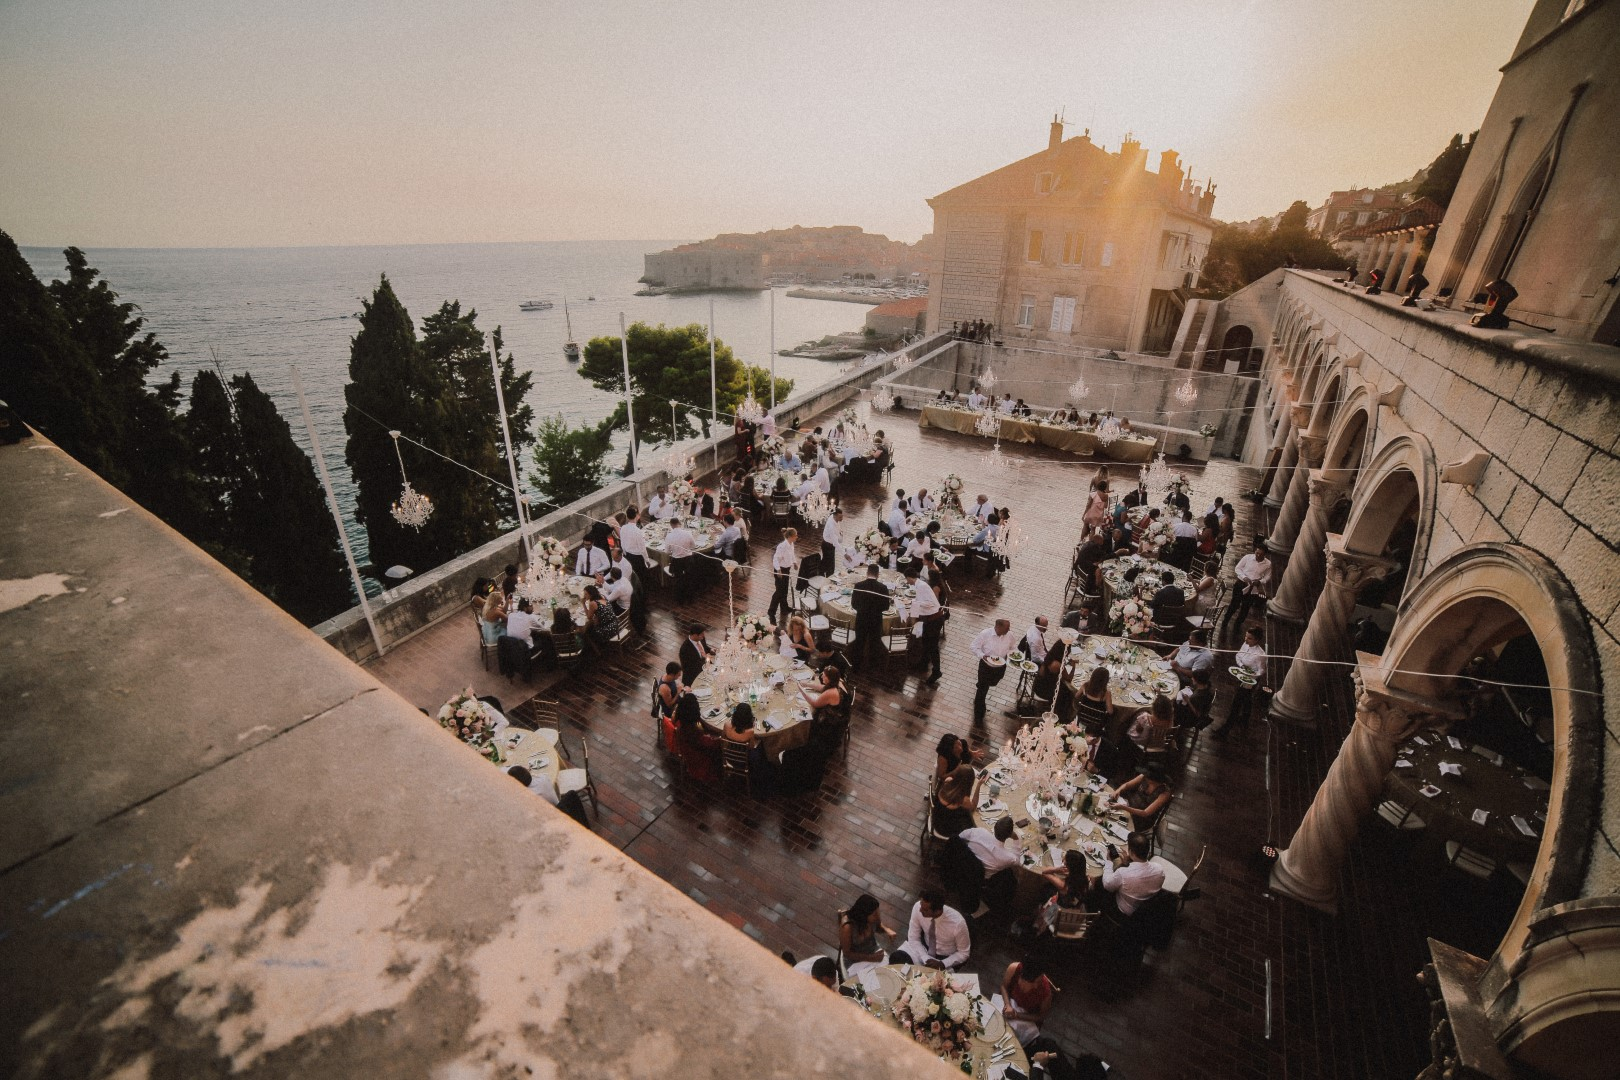 An aerial shot of the wedding reception on the terrace of the Dubrovnik art gallery. Dubrovnik old city is in the background. The tables are round and there are chandeliers hanging over them on a string. The guests are being served dinner while chatting.